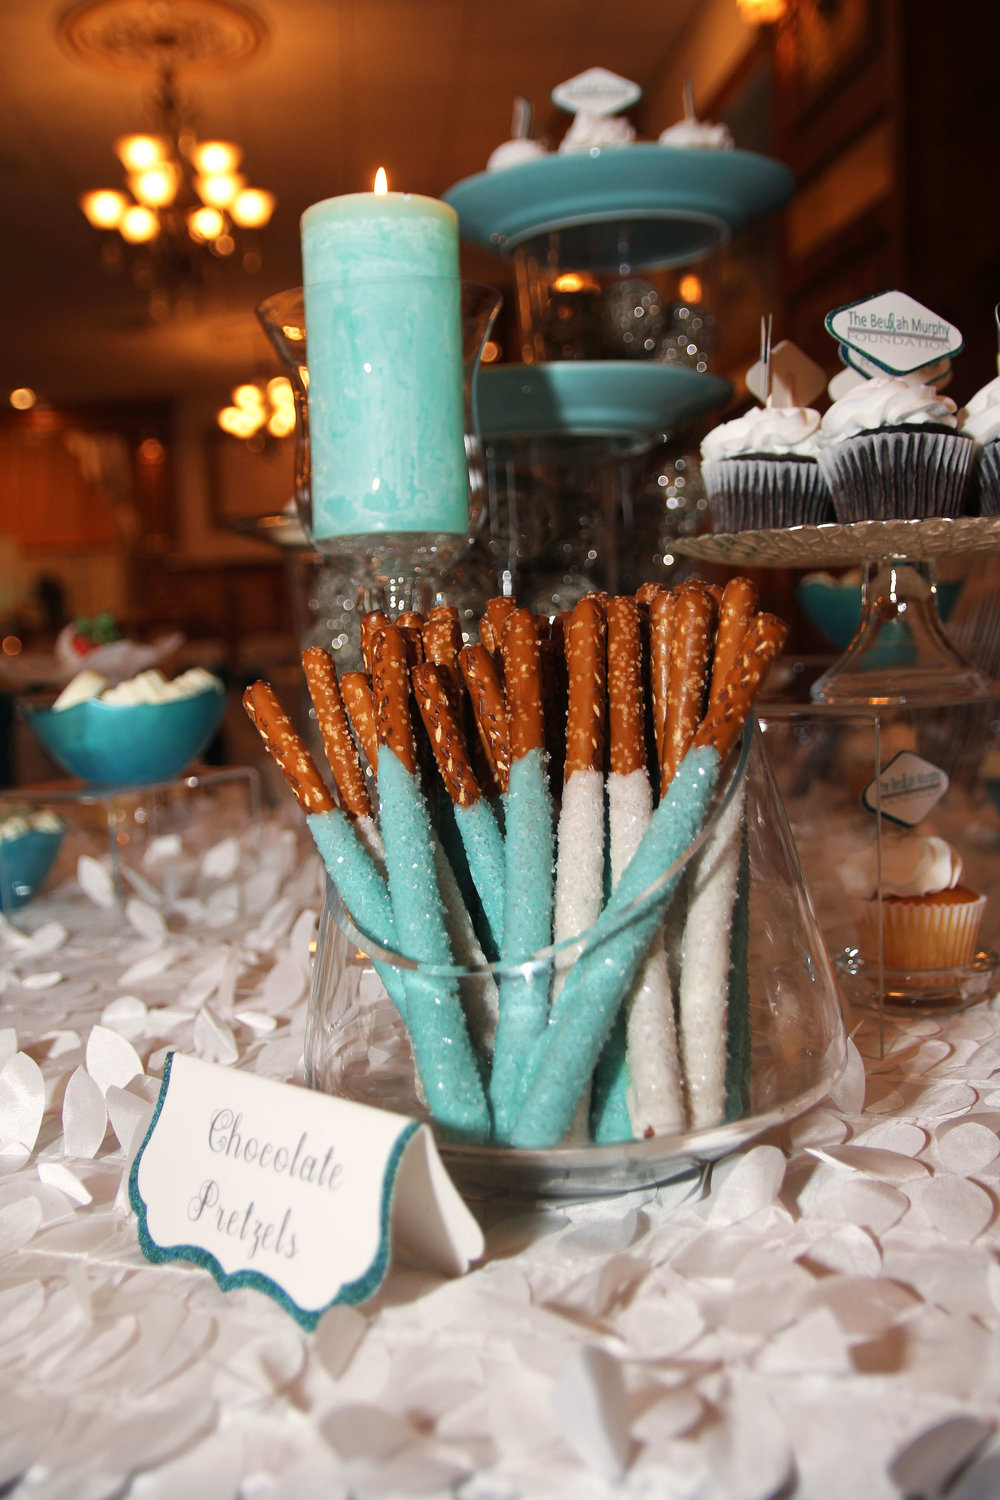 teal-and-white-chocolate-pretzels